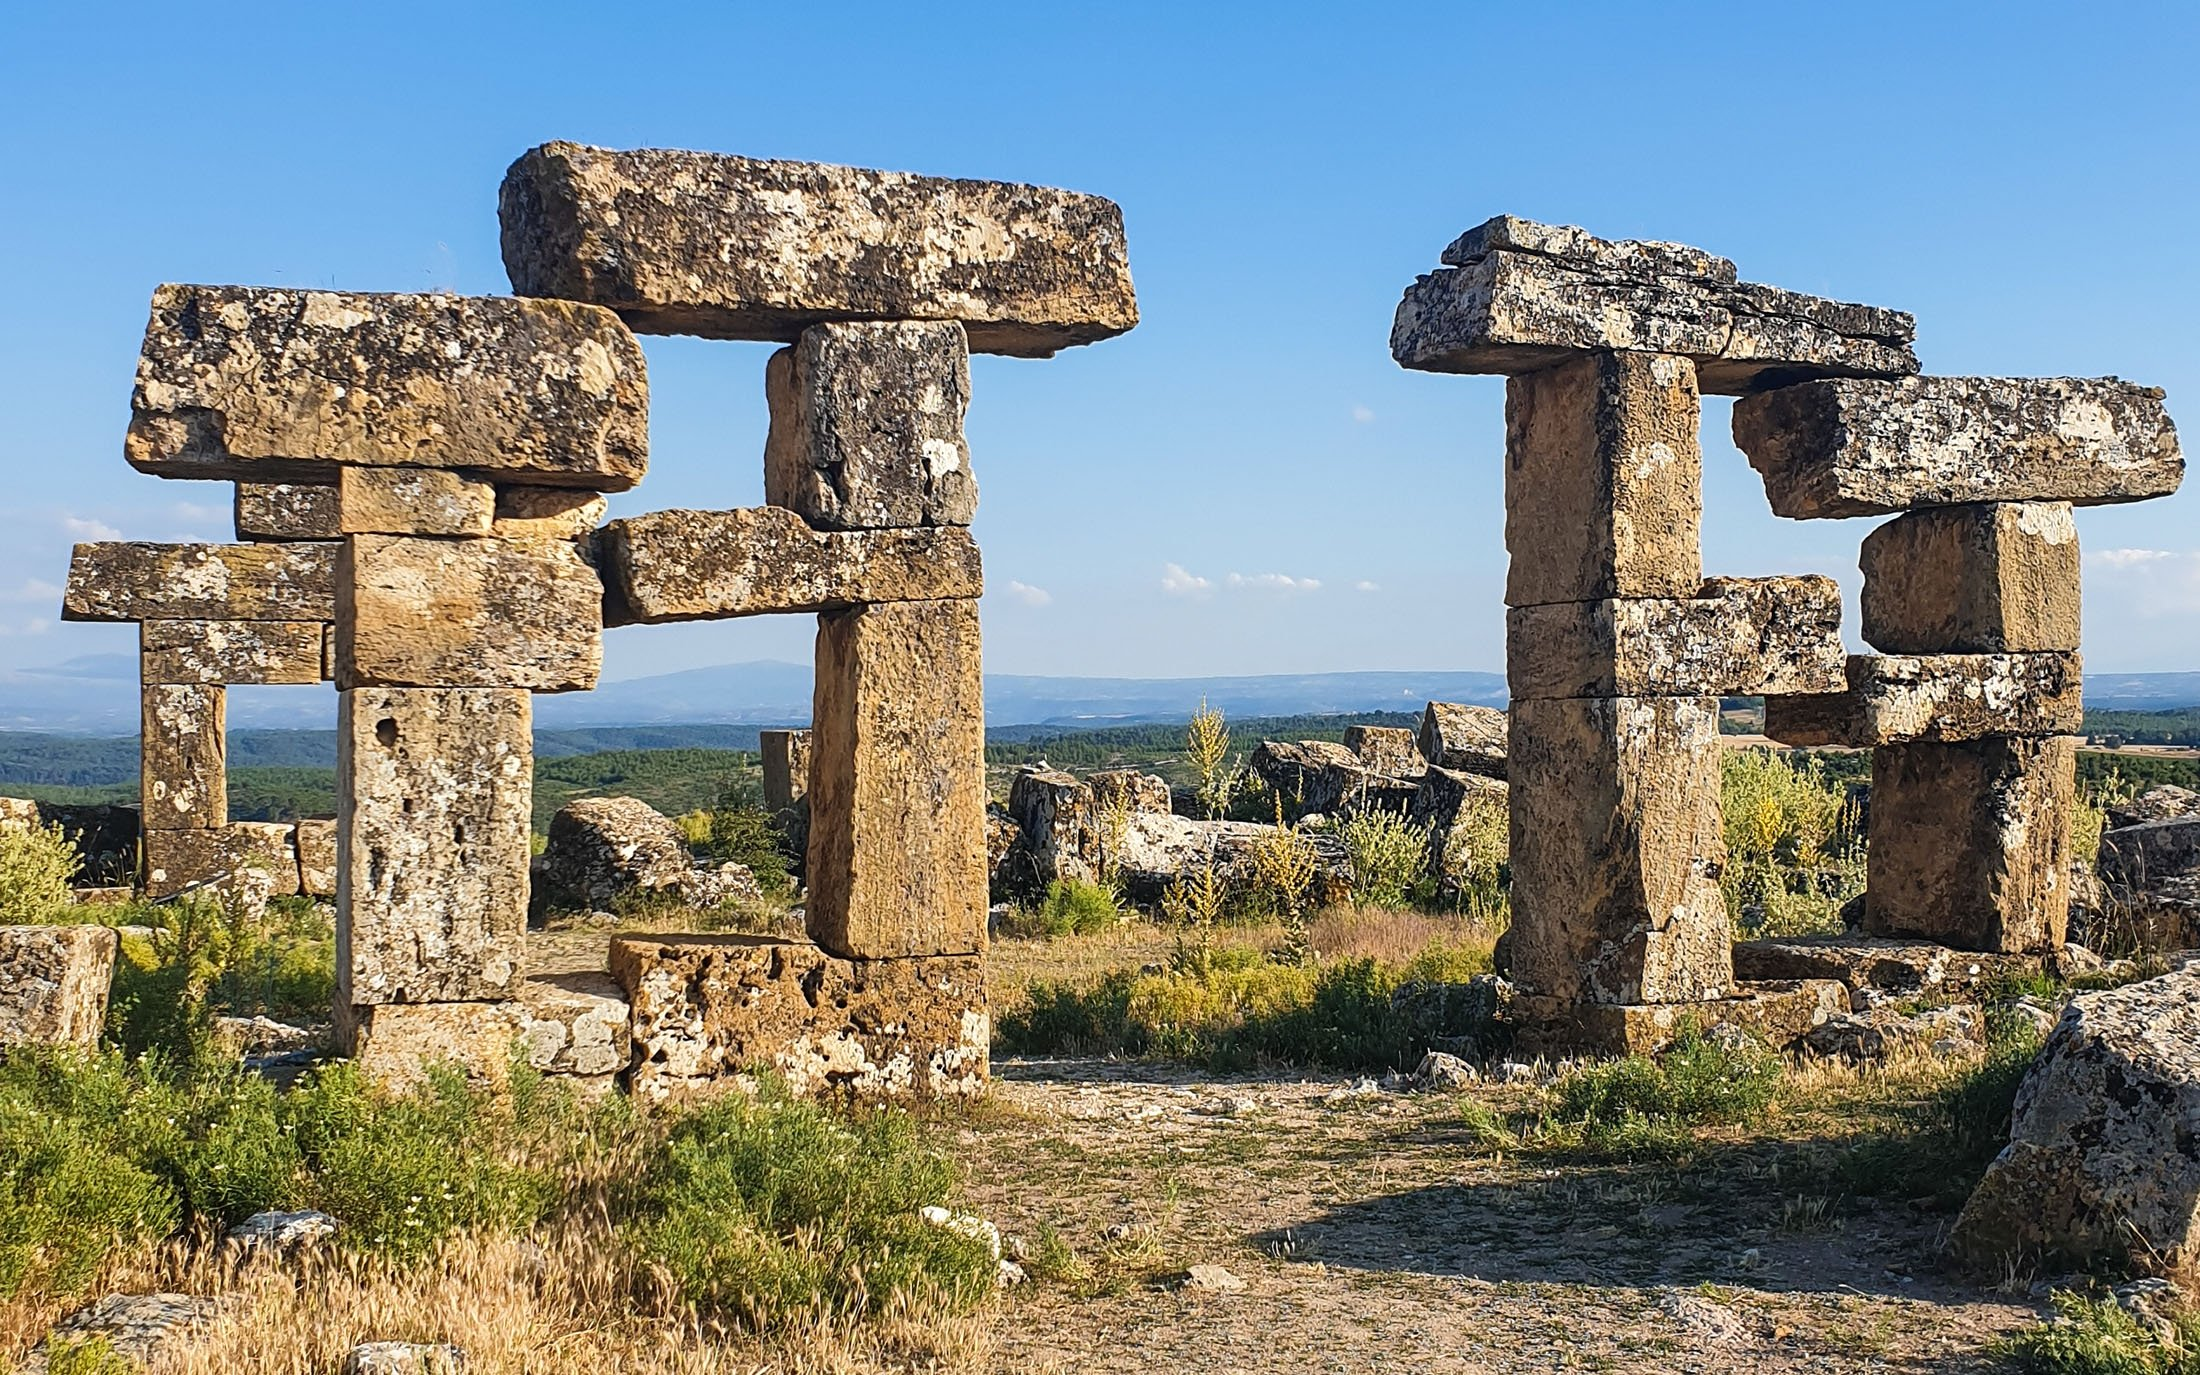 These structures resemble Stonehenge at Blaundus, Uşak, western Turkey. (Photo by Argun Konuk)